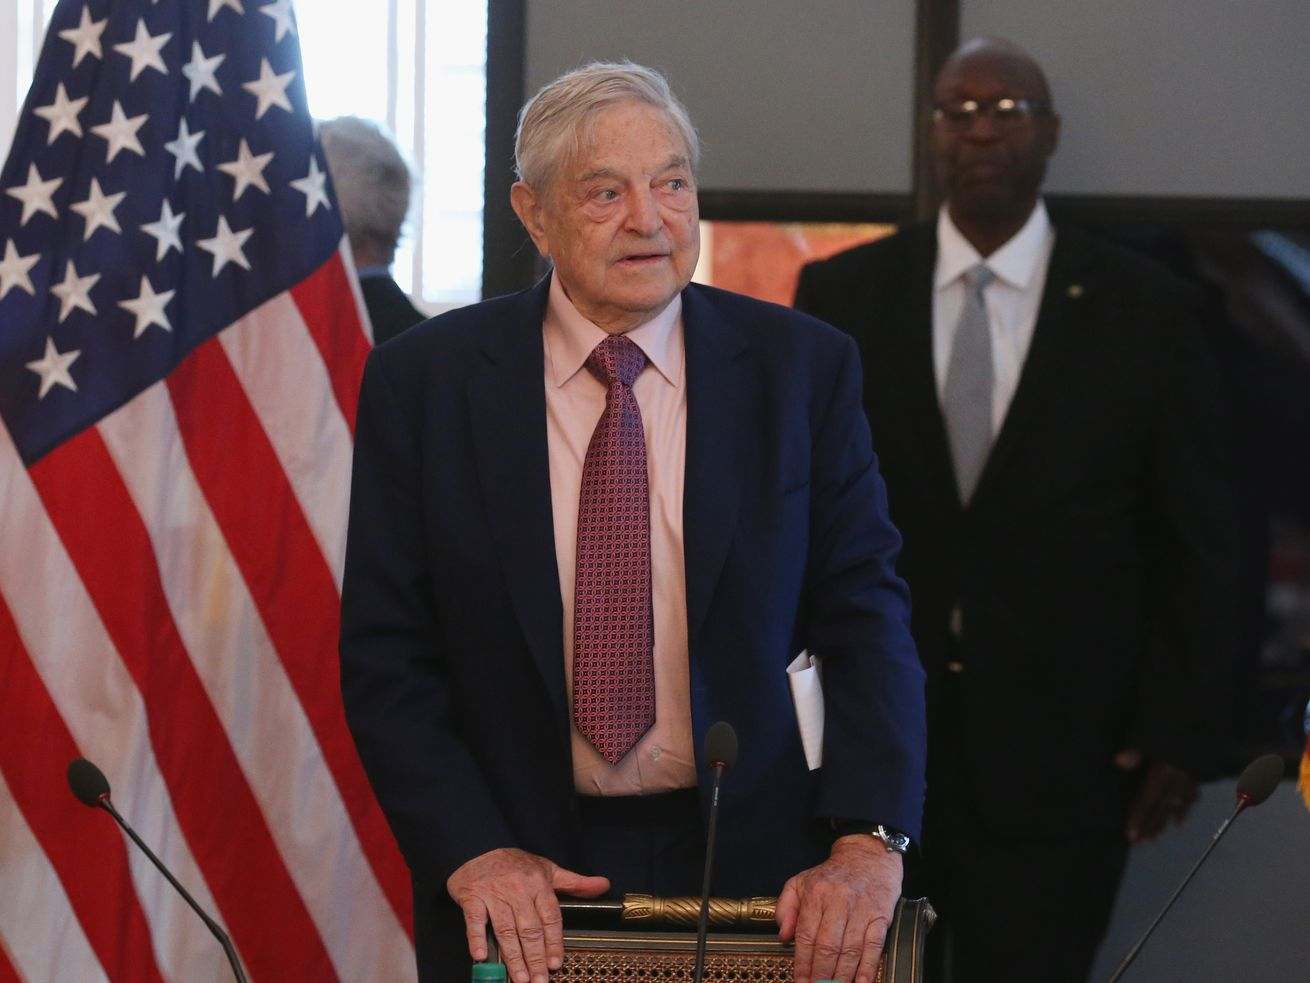 Billionaire investor and philanthropist George Soros speaks at an event in Washington, DC, in May 2015.